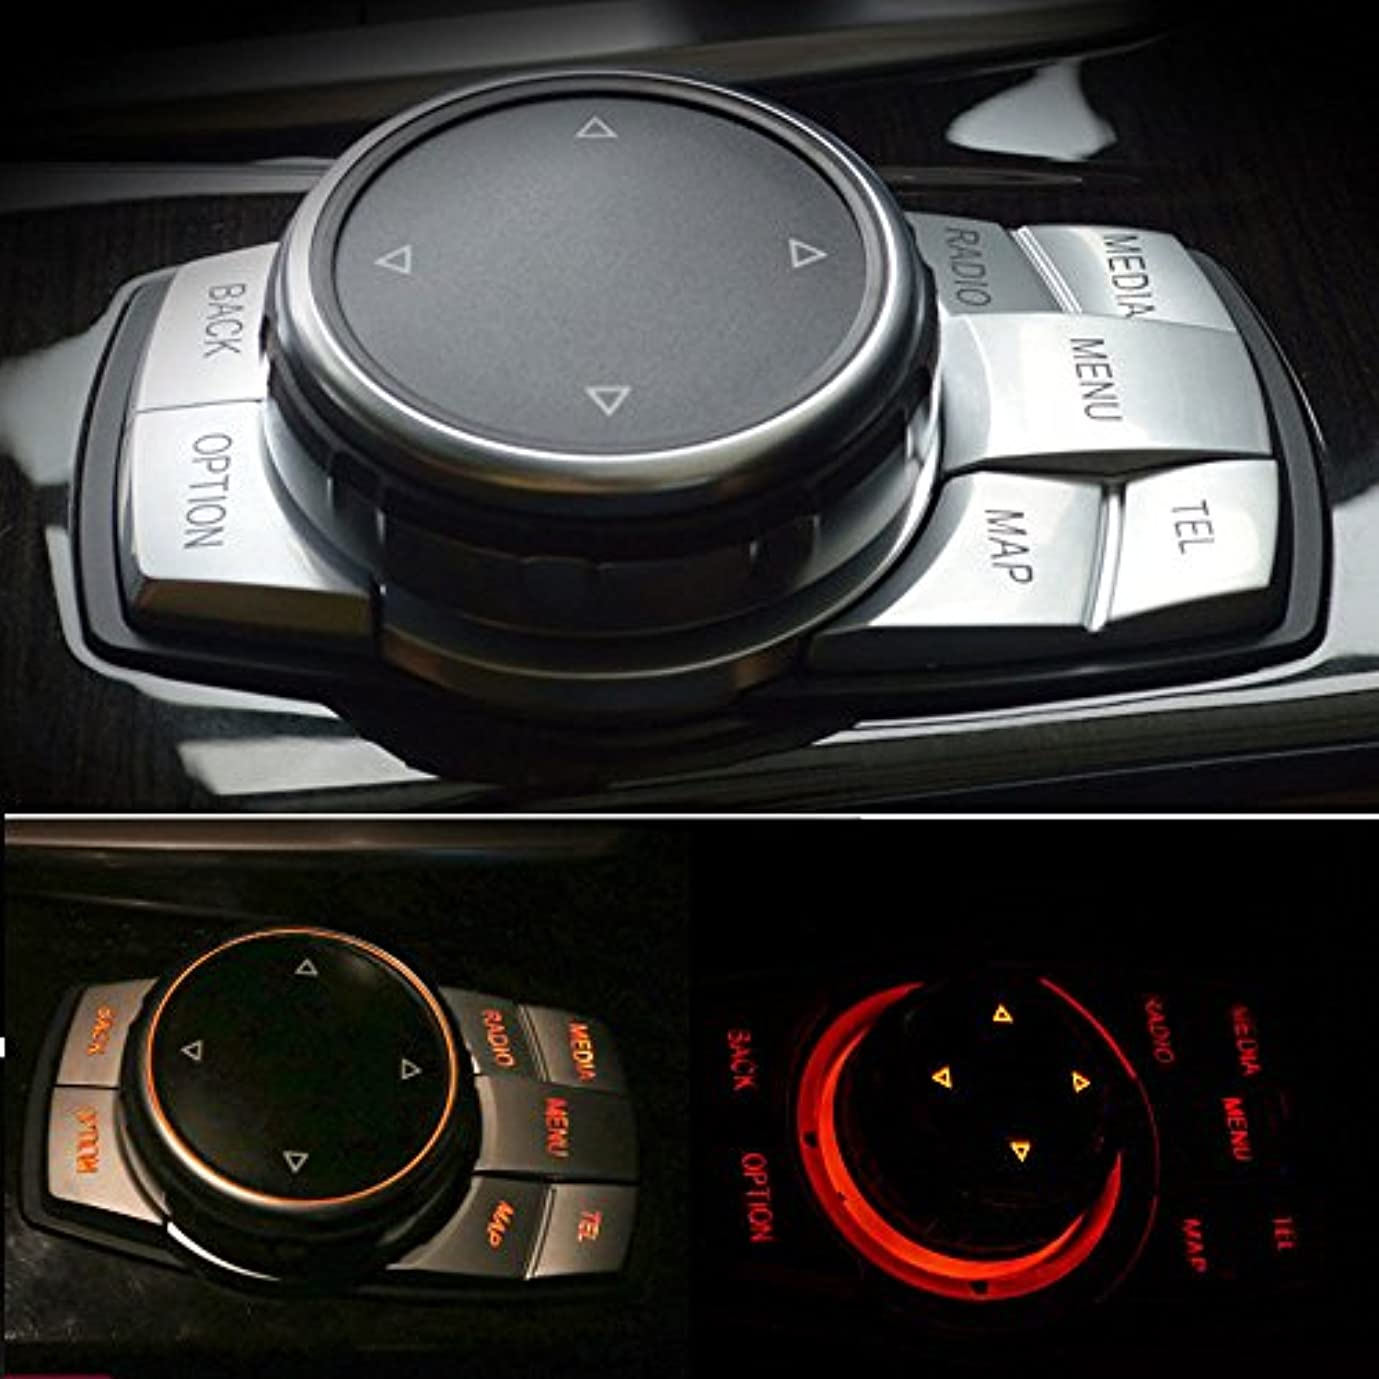 収益困惑した邪悪なJicorzo - Interior Chrome Multi-Media Button Cover Trim Decoration Car Styling Sticker ABS For BMW 7 Series E60...